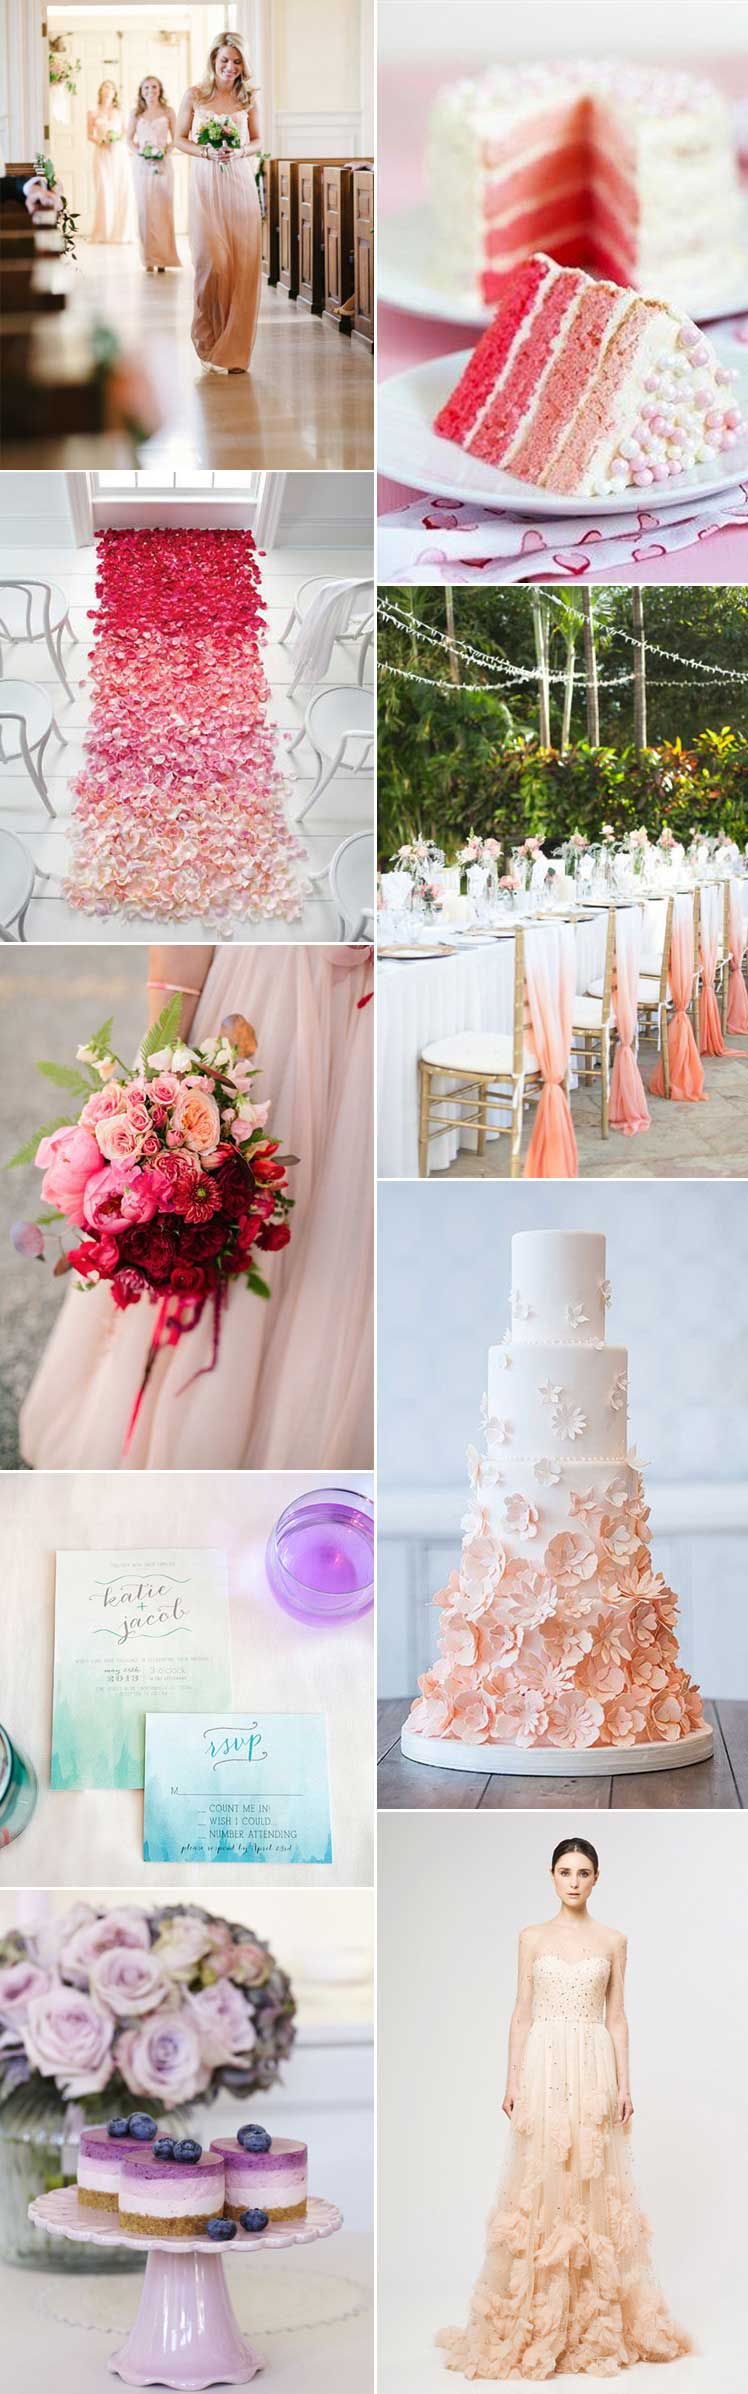 Ombre wedding theme inspiration